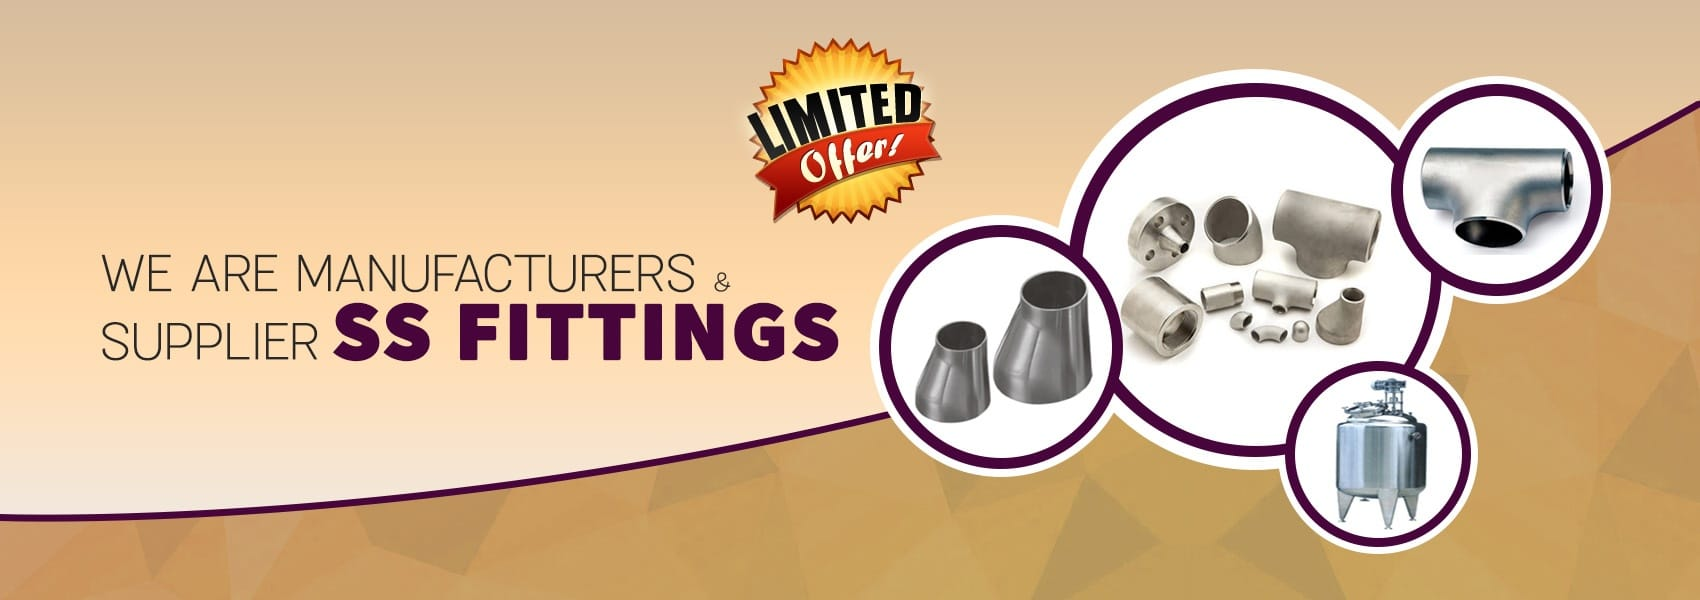 ss fittings supplier